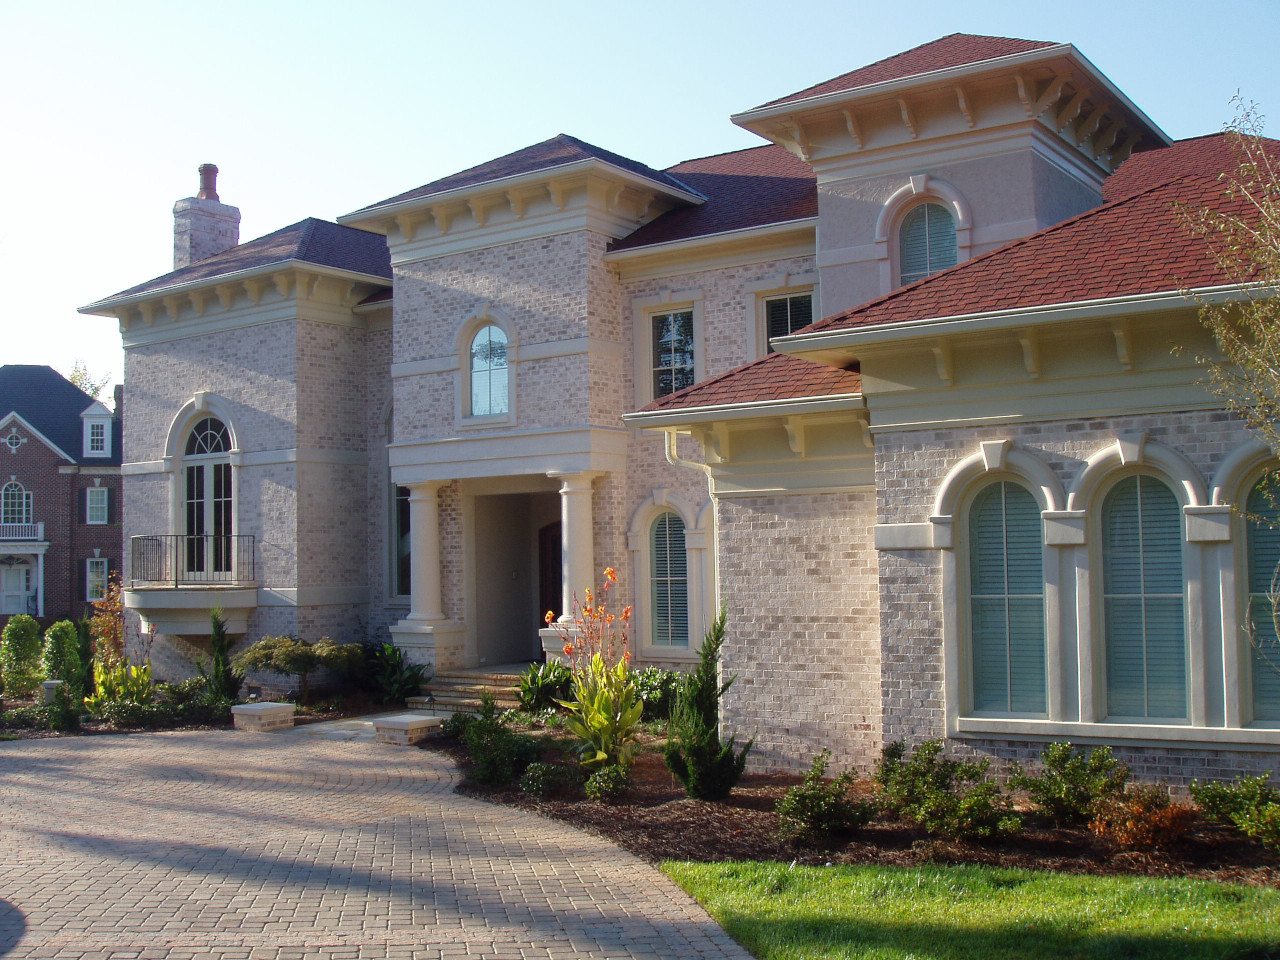 These custom wood braces complete the style of this Mediterranian inspired home.